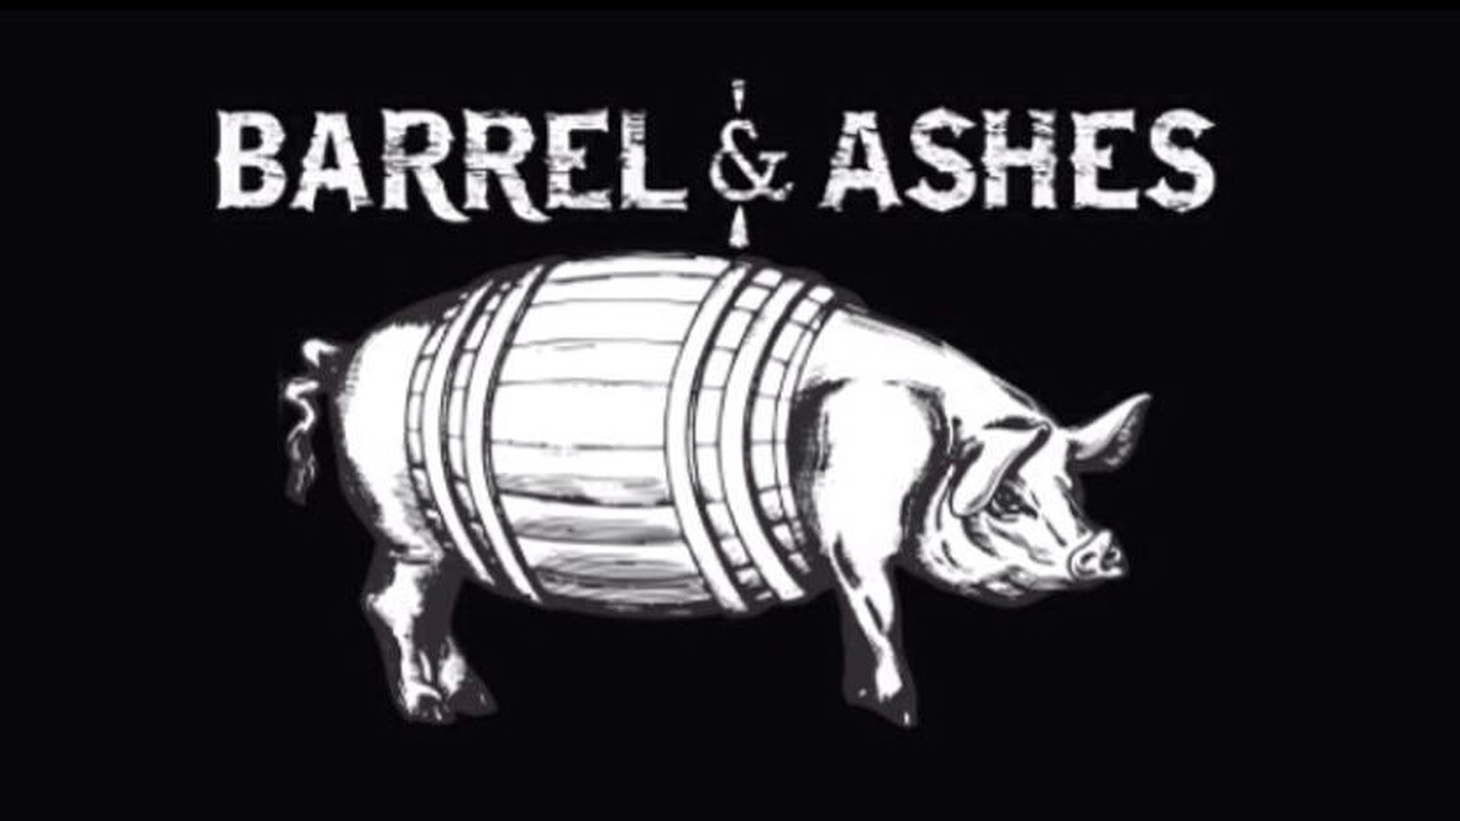 Jonathan Gold reviews Barrel & Ashes, a Texas-style barbecue restaurant in Studio City.